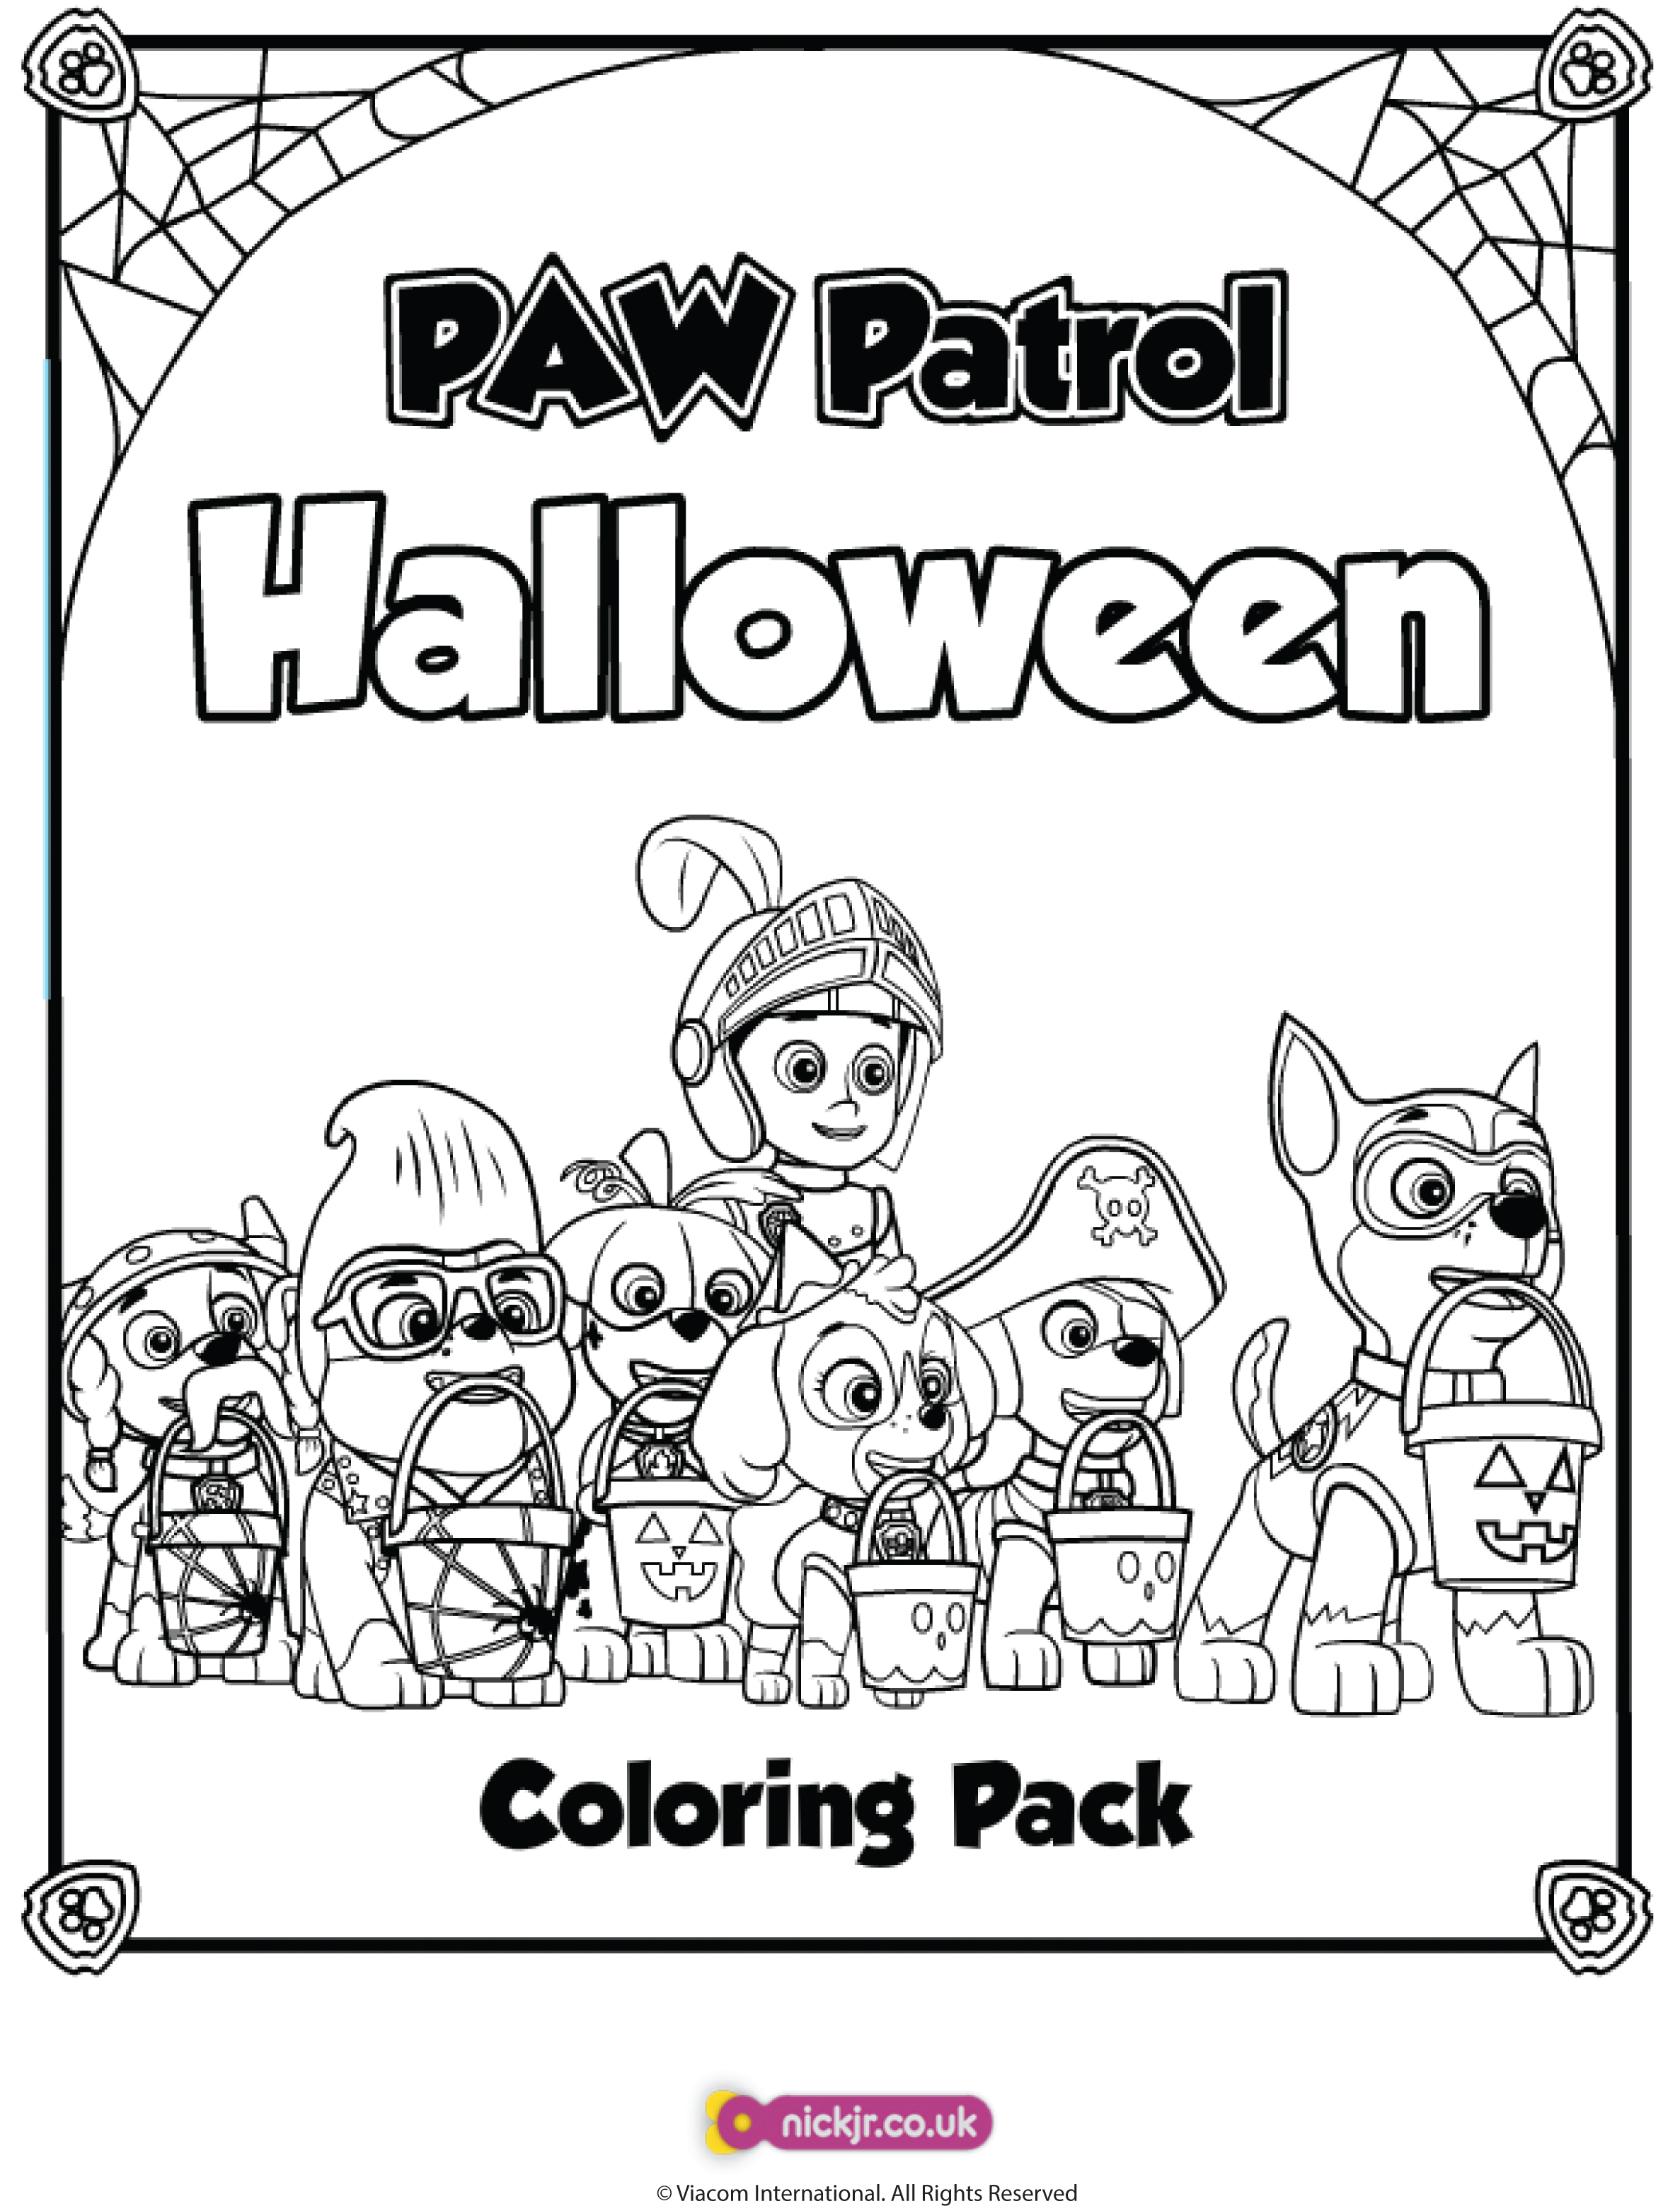 Paw Patrol Coloring Pages Game : Nick jr pumpkin party and giveaway in the playroom